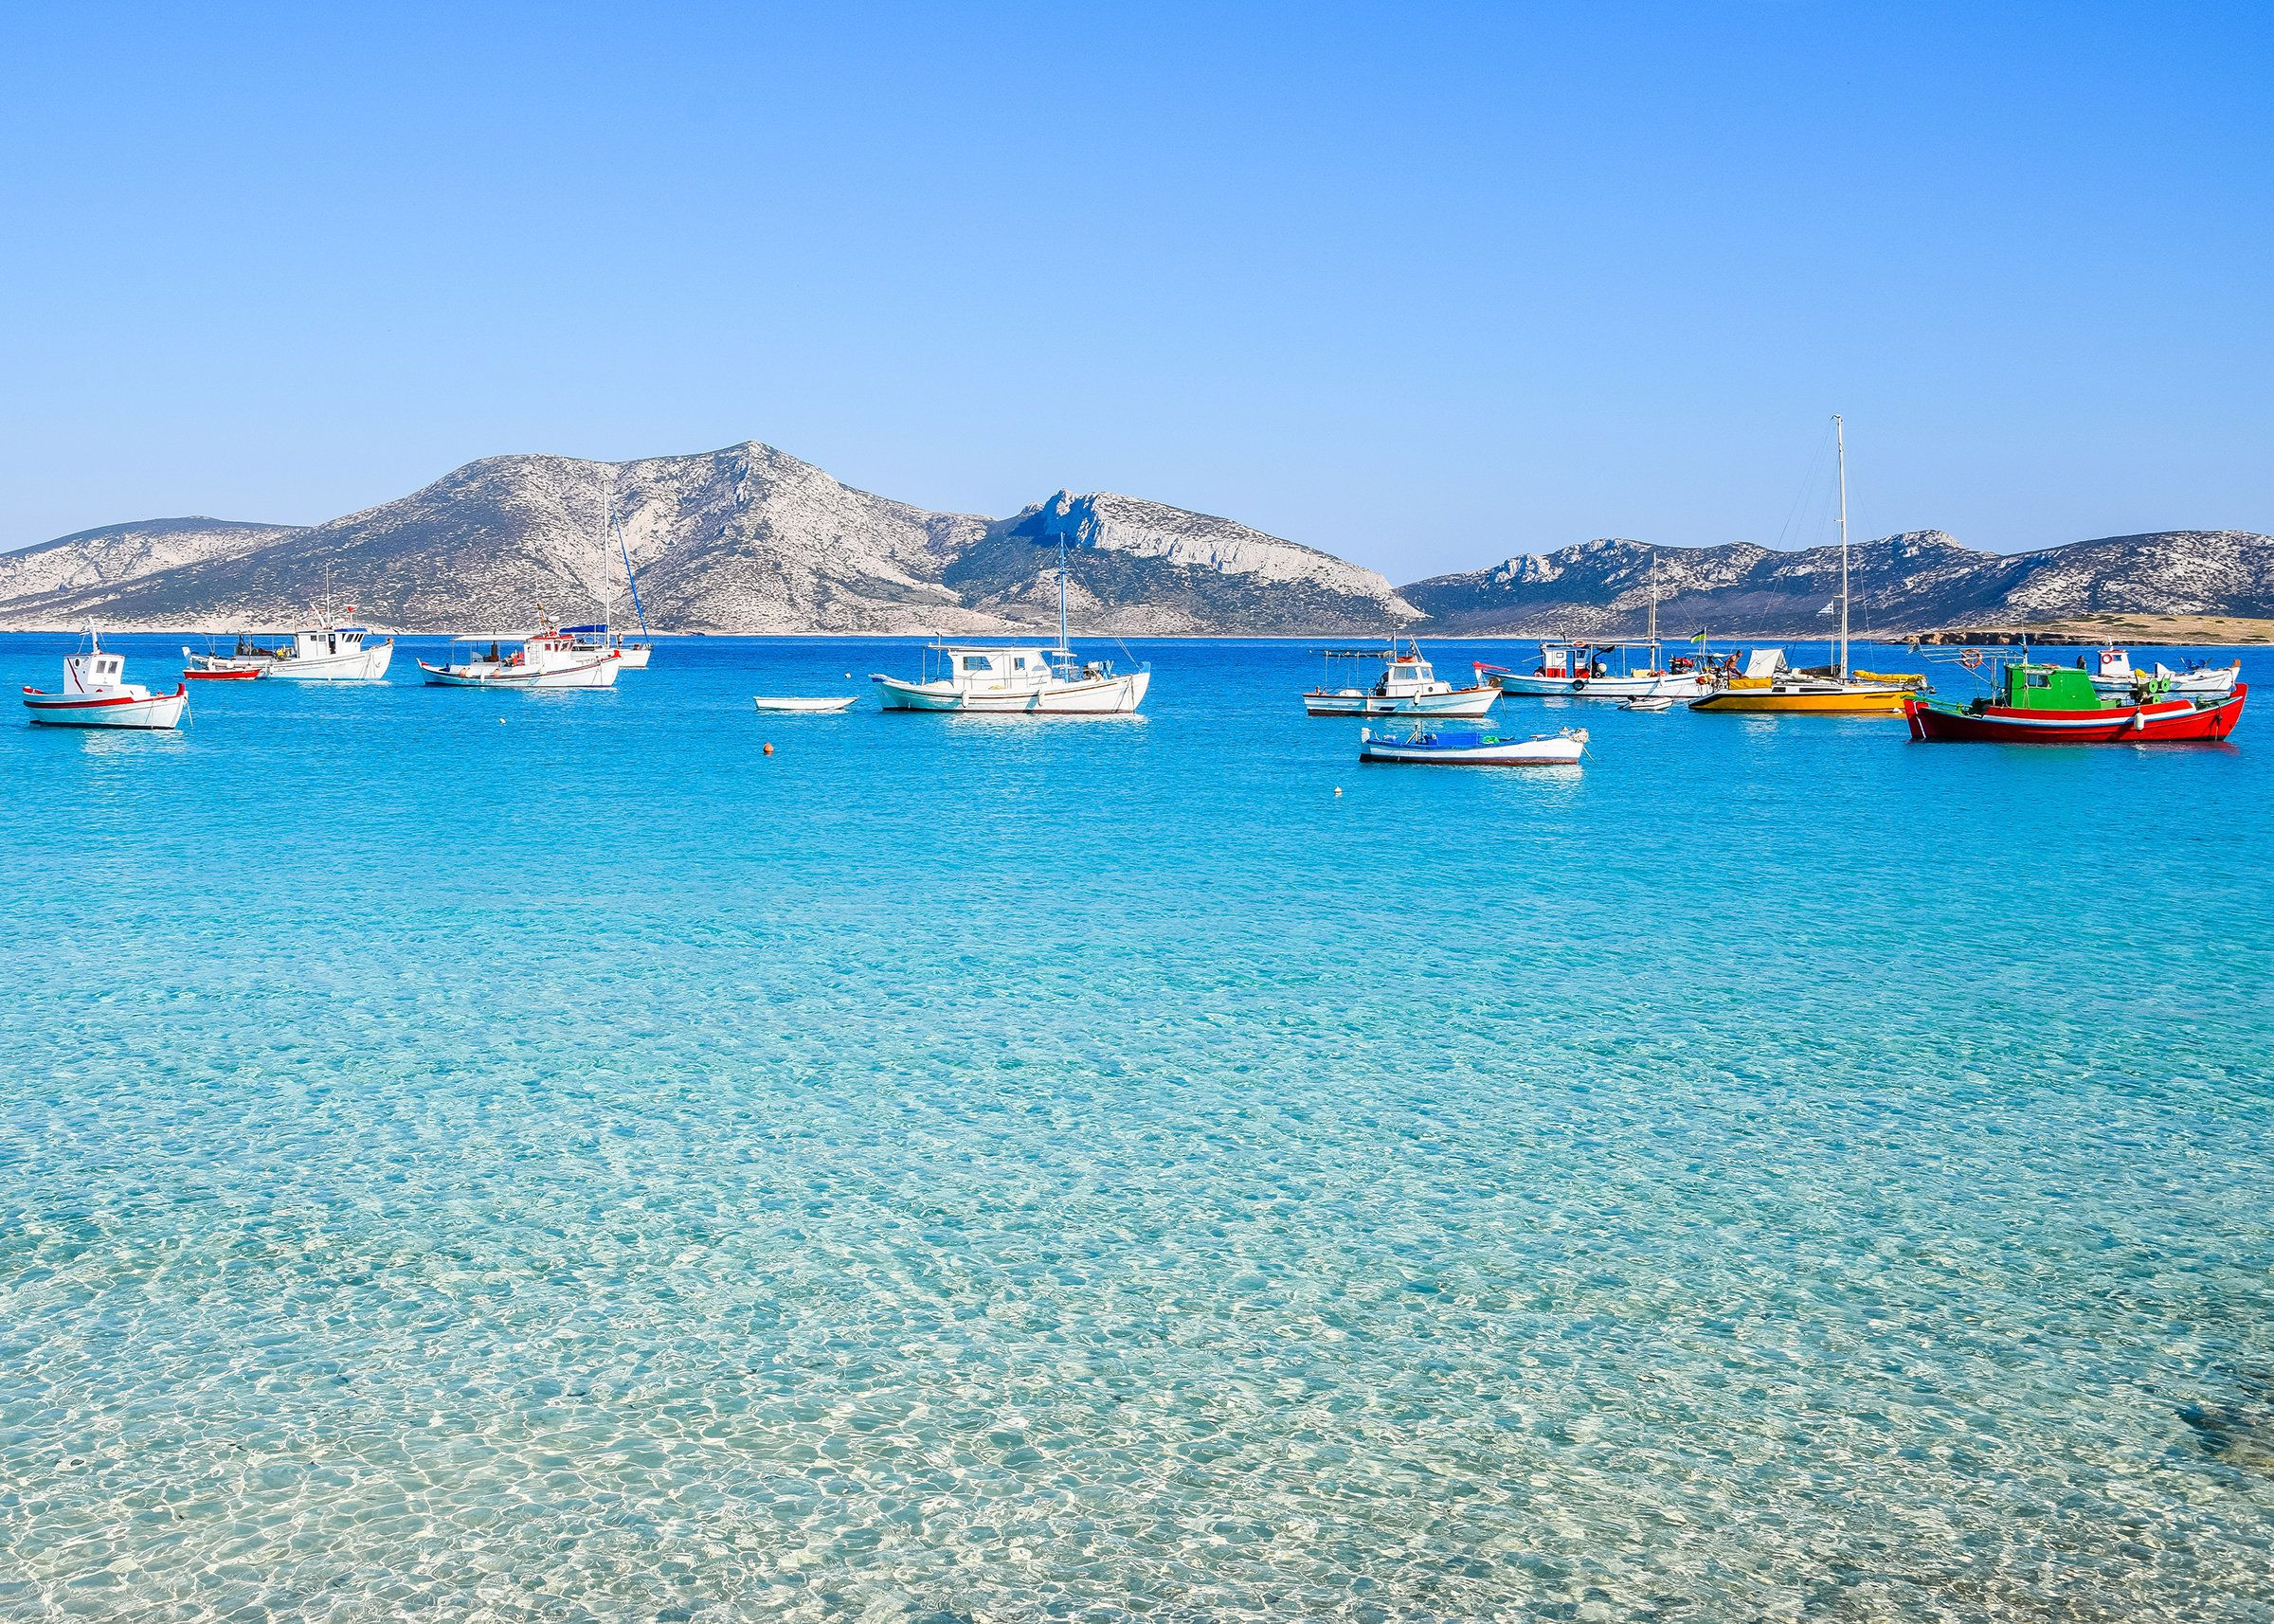 """The&nbsp;<a href=""""https://www.lonelyplanet.com/greece/small-cyclades/travel-tips-and-articles/exploring-the-small-cyclades/40"""